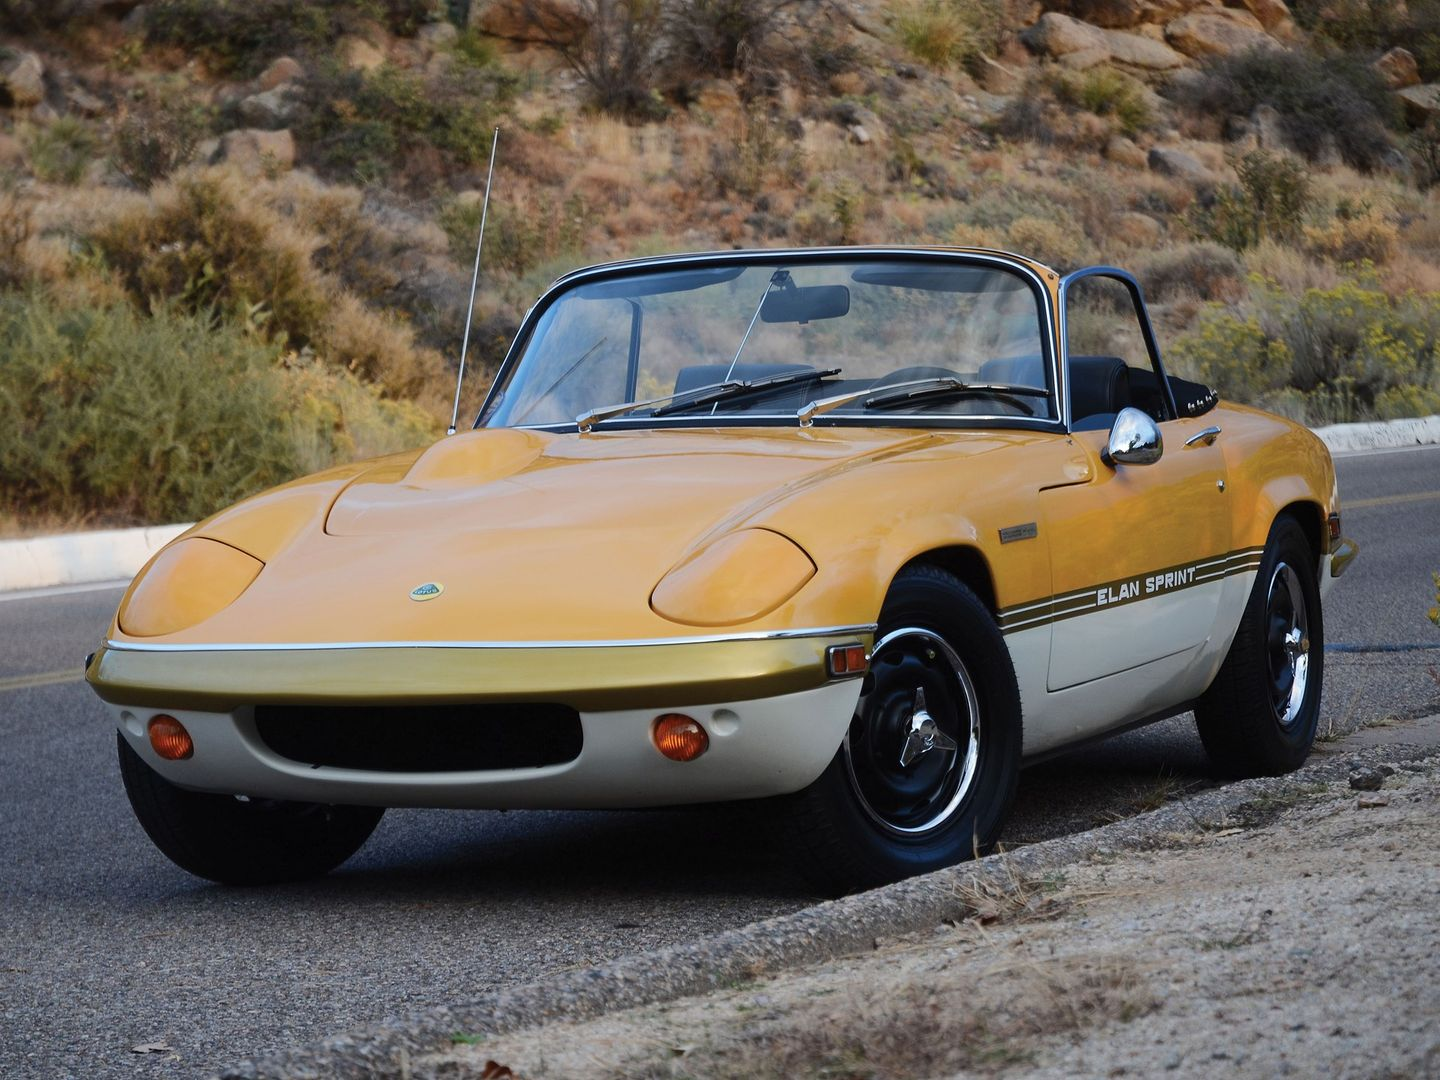 Lotus Elan Sprint DHC